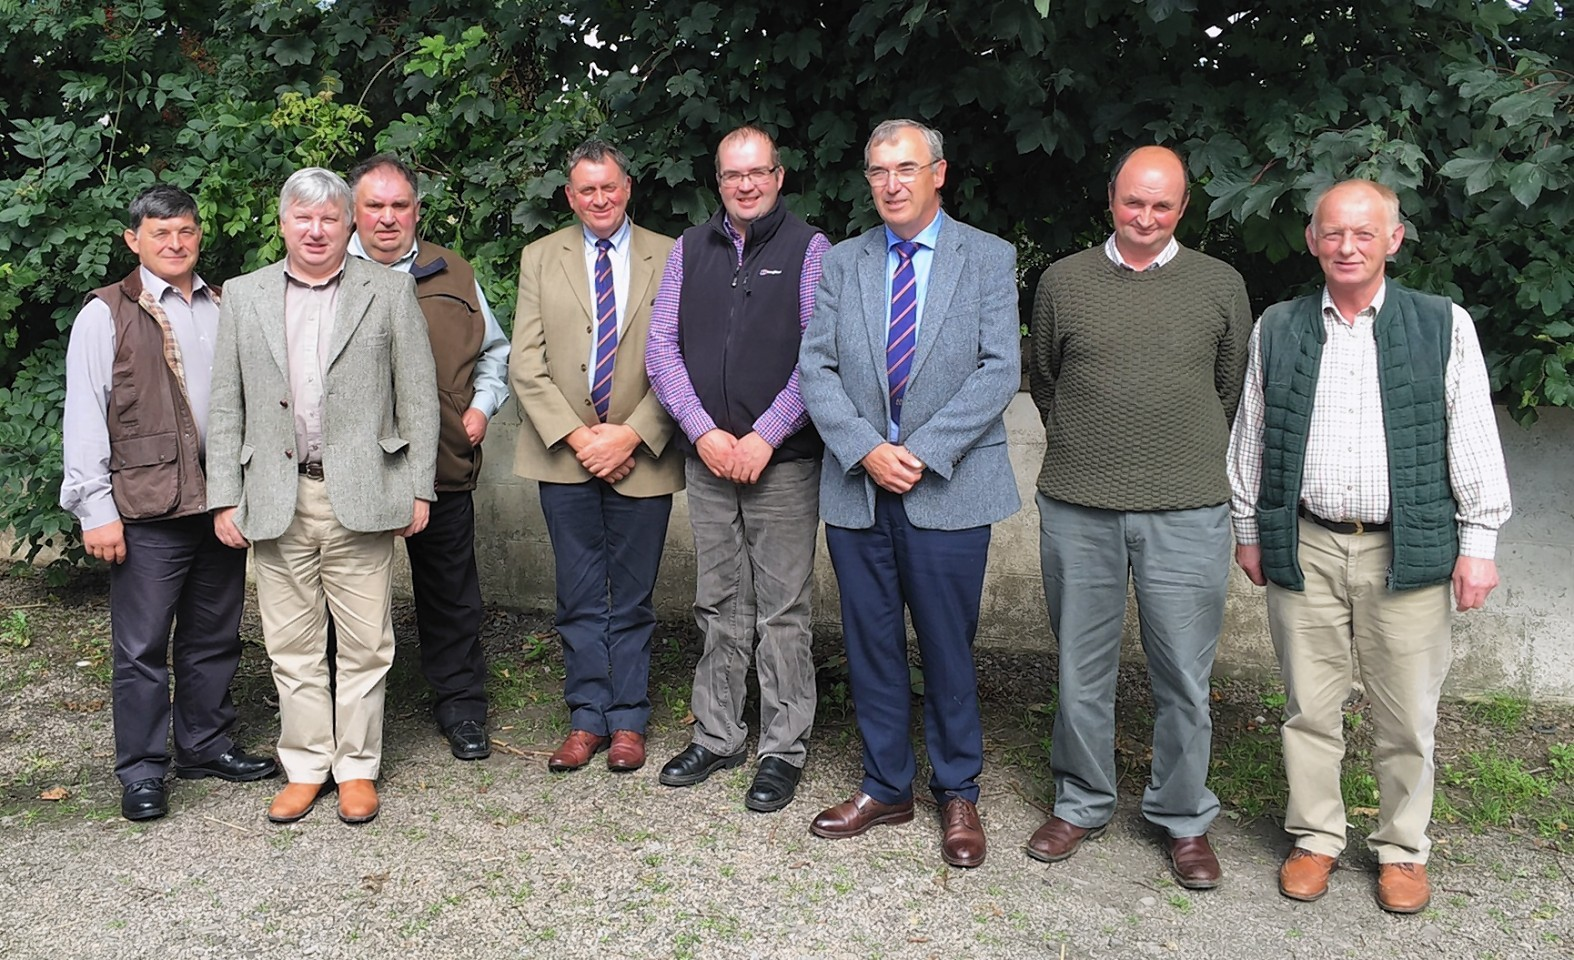 Arnott Coghill, Rodney Brass, Billy Campbell, Pete Watson (ANM Group's vice chairman), Stephen Sutherland, Pat Machray (ANM Group's chairman), Ian Gunn, and Donald Hymers. Andrew Mackay is not in the photograph.